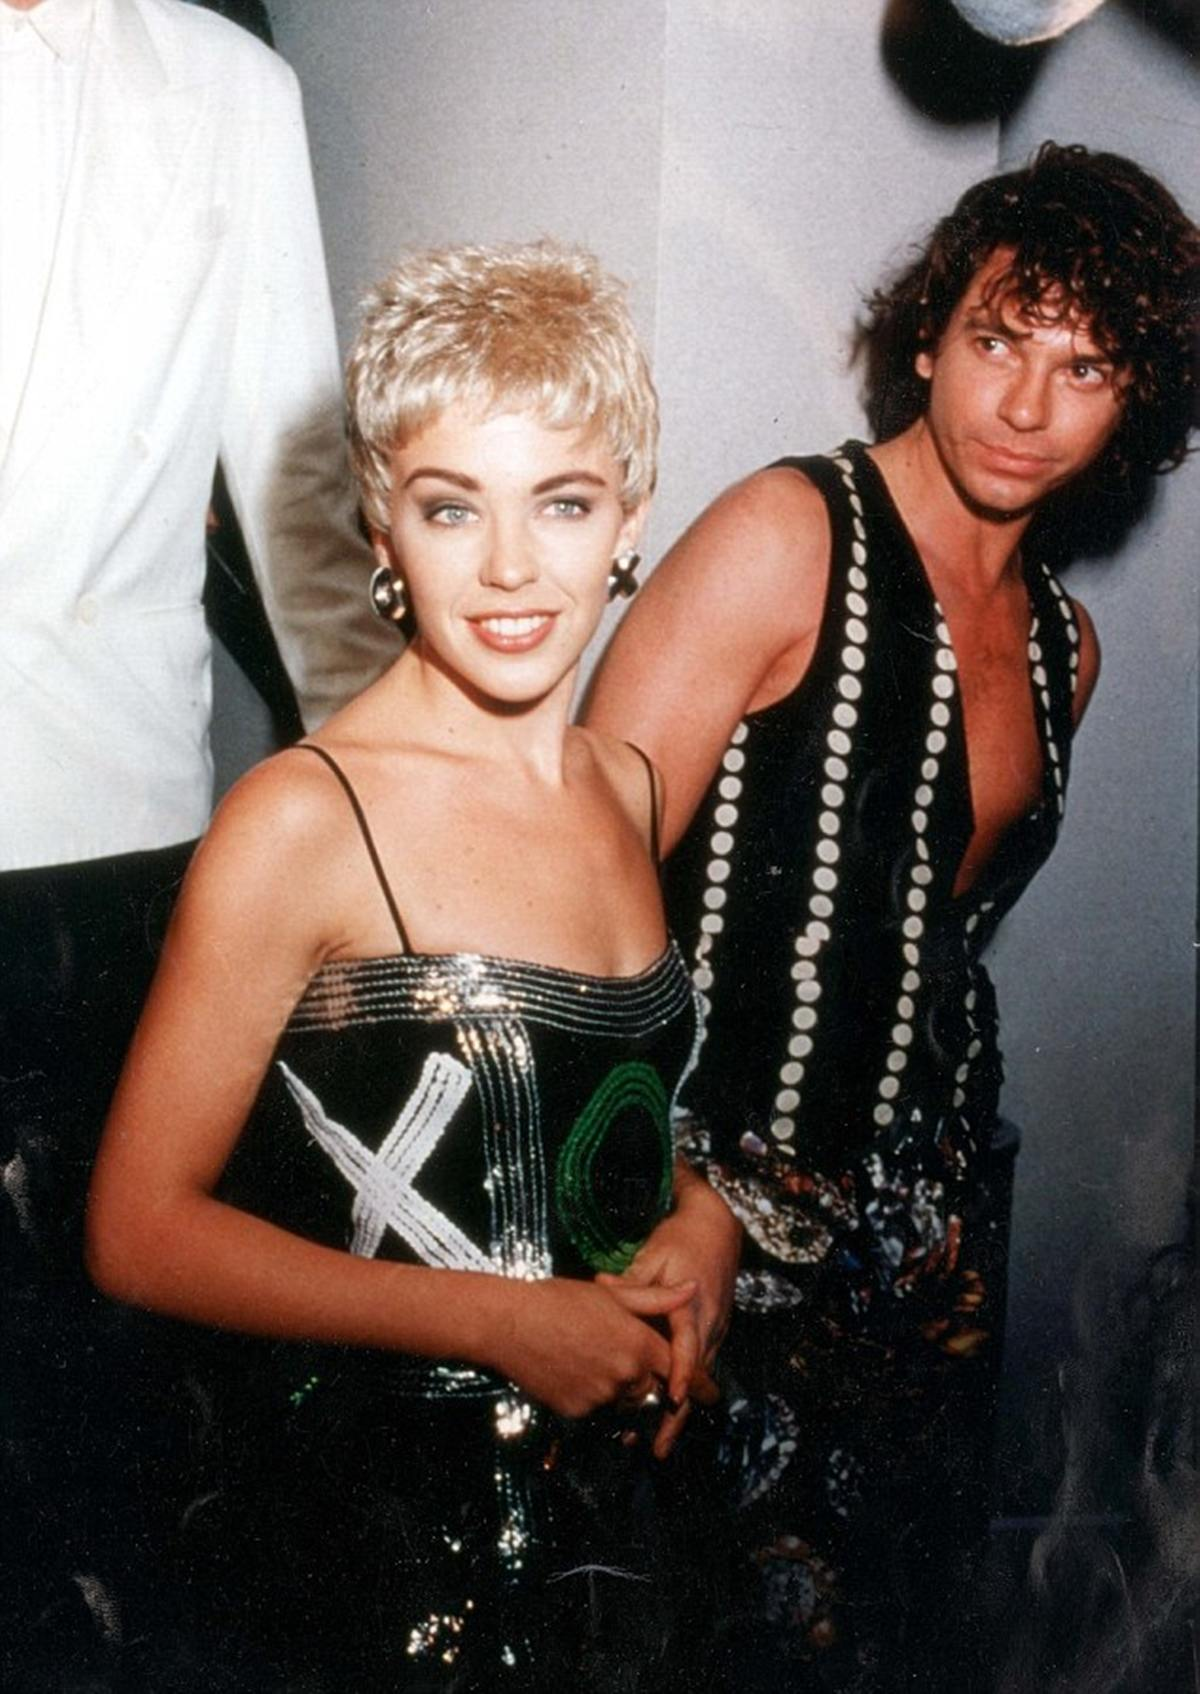 12 10 26 Shocking Revelations About Your Favourite 80s Music Acts!